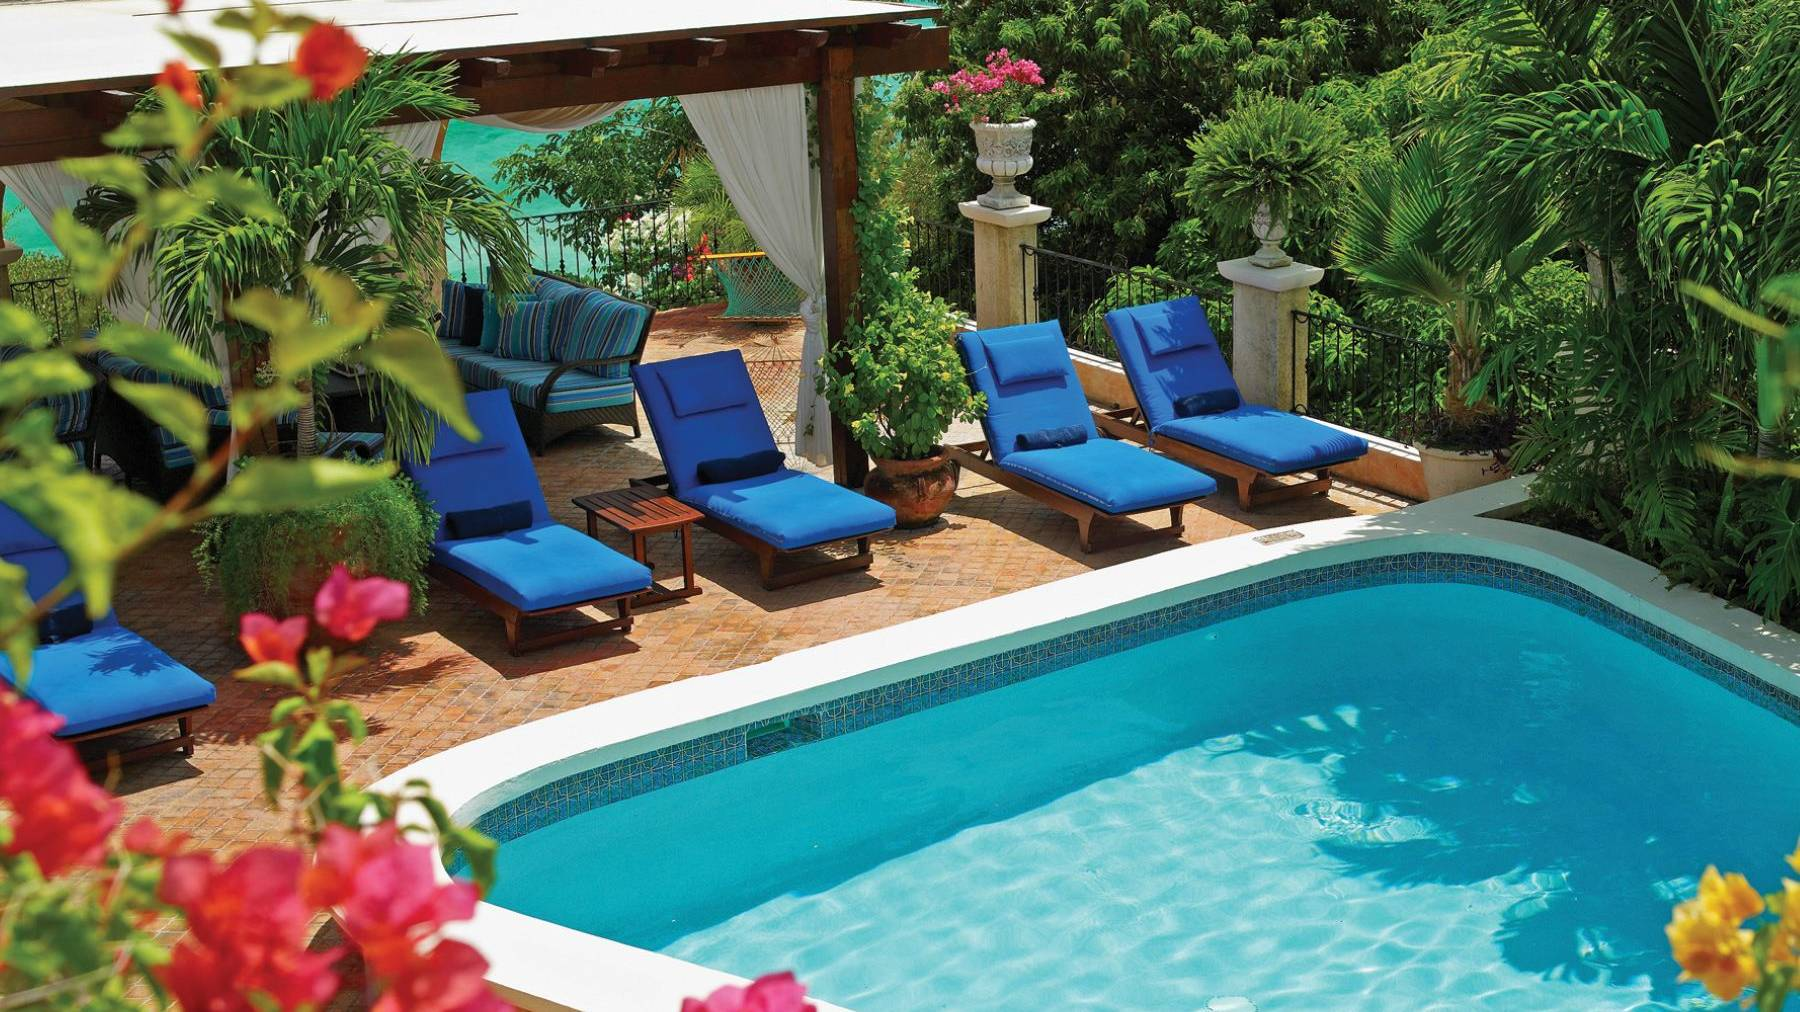 little-arches-boutique-hotel-barbados-images-31.jpeg